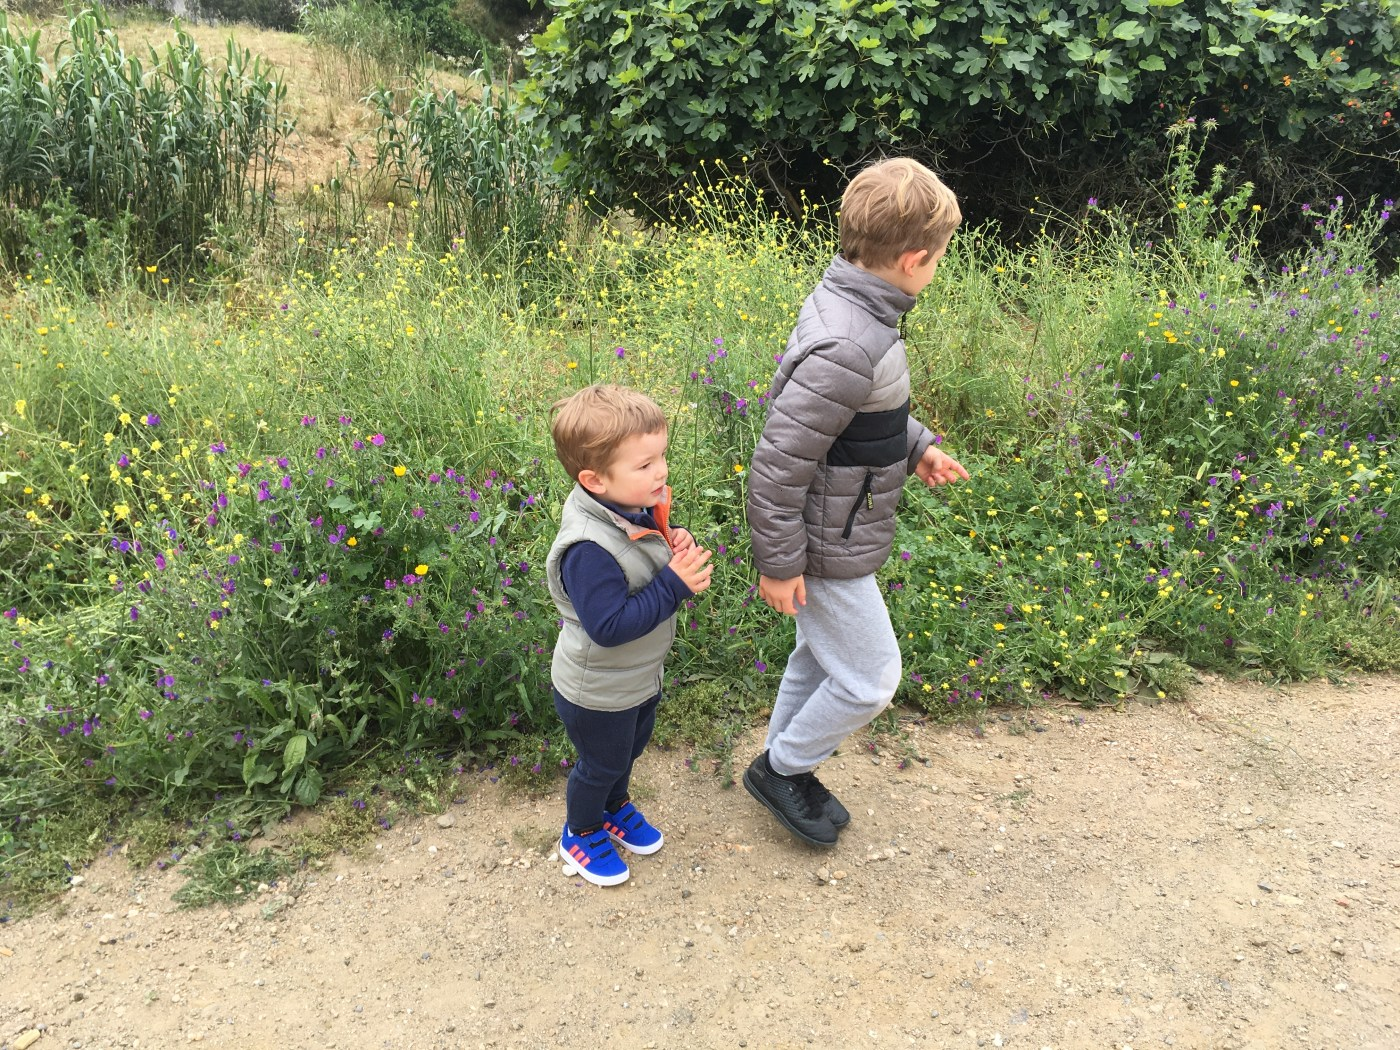 Children in Spain are allowed out for a walk